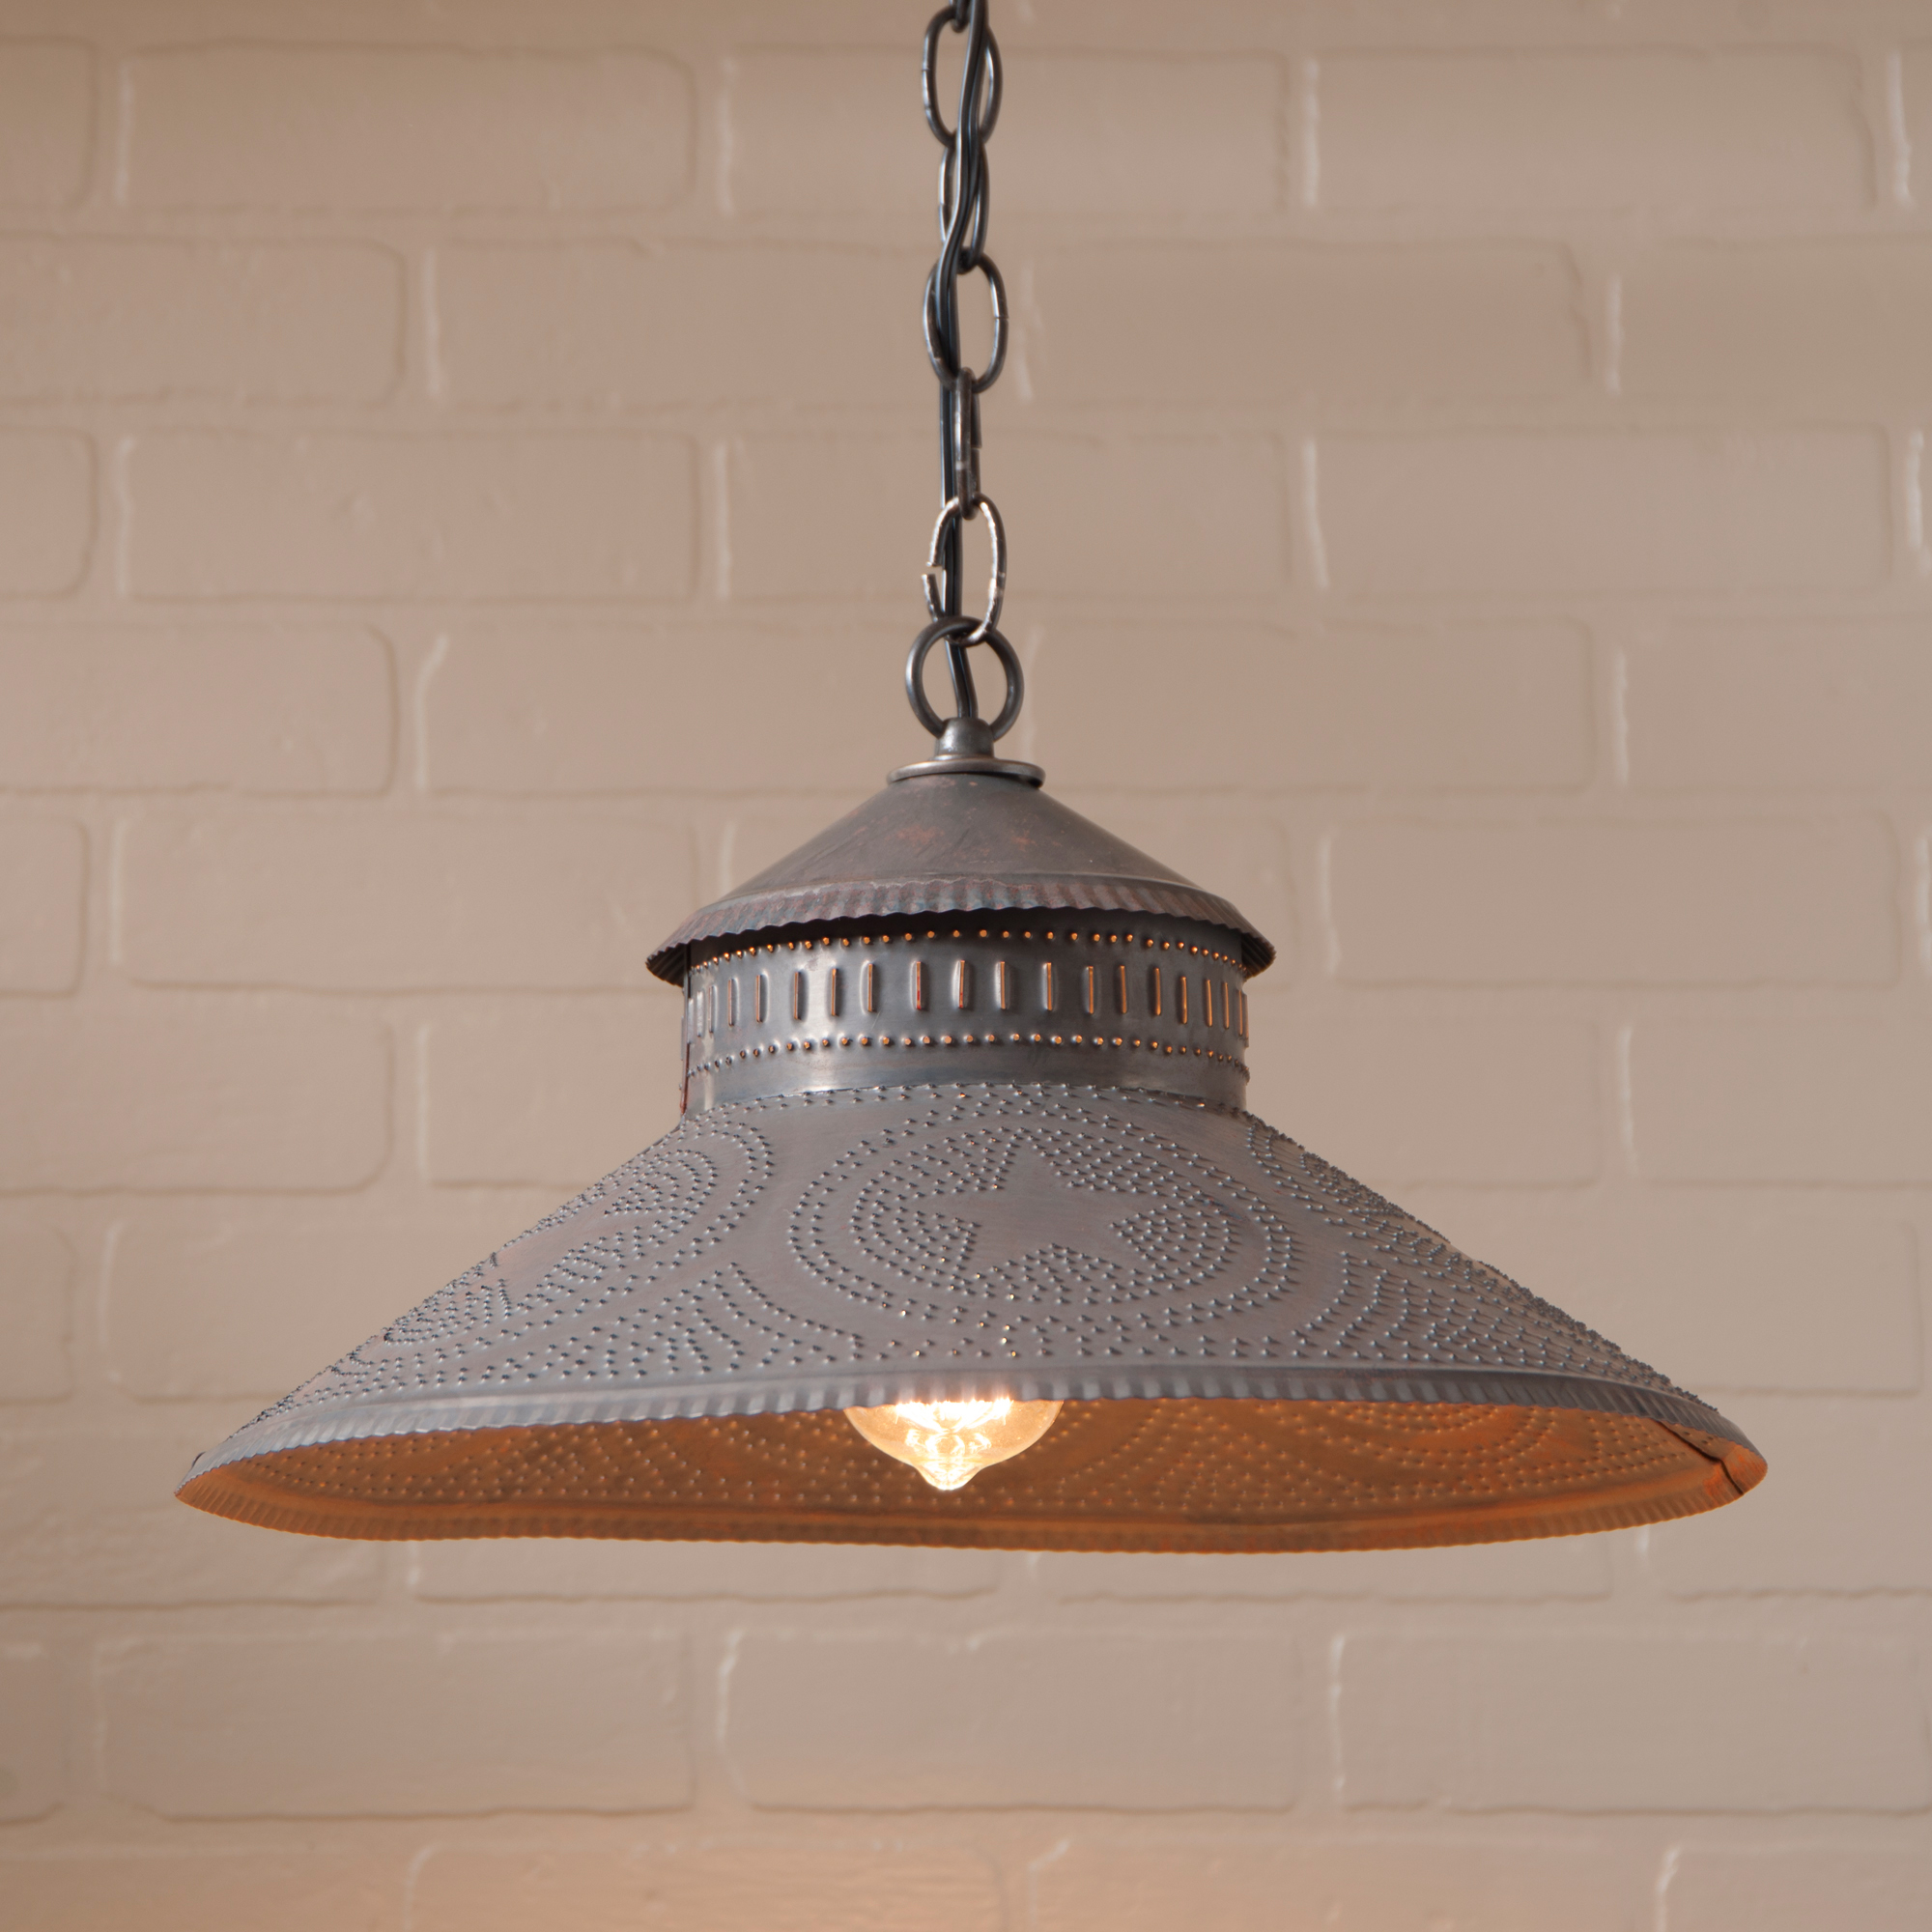 Shopkeeper Shade Light Pendant with Regular Star in Blackened Punched Tin